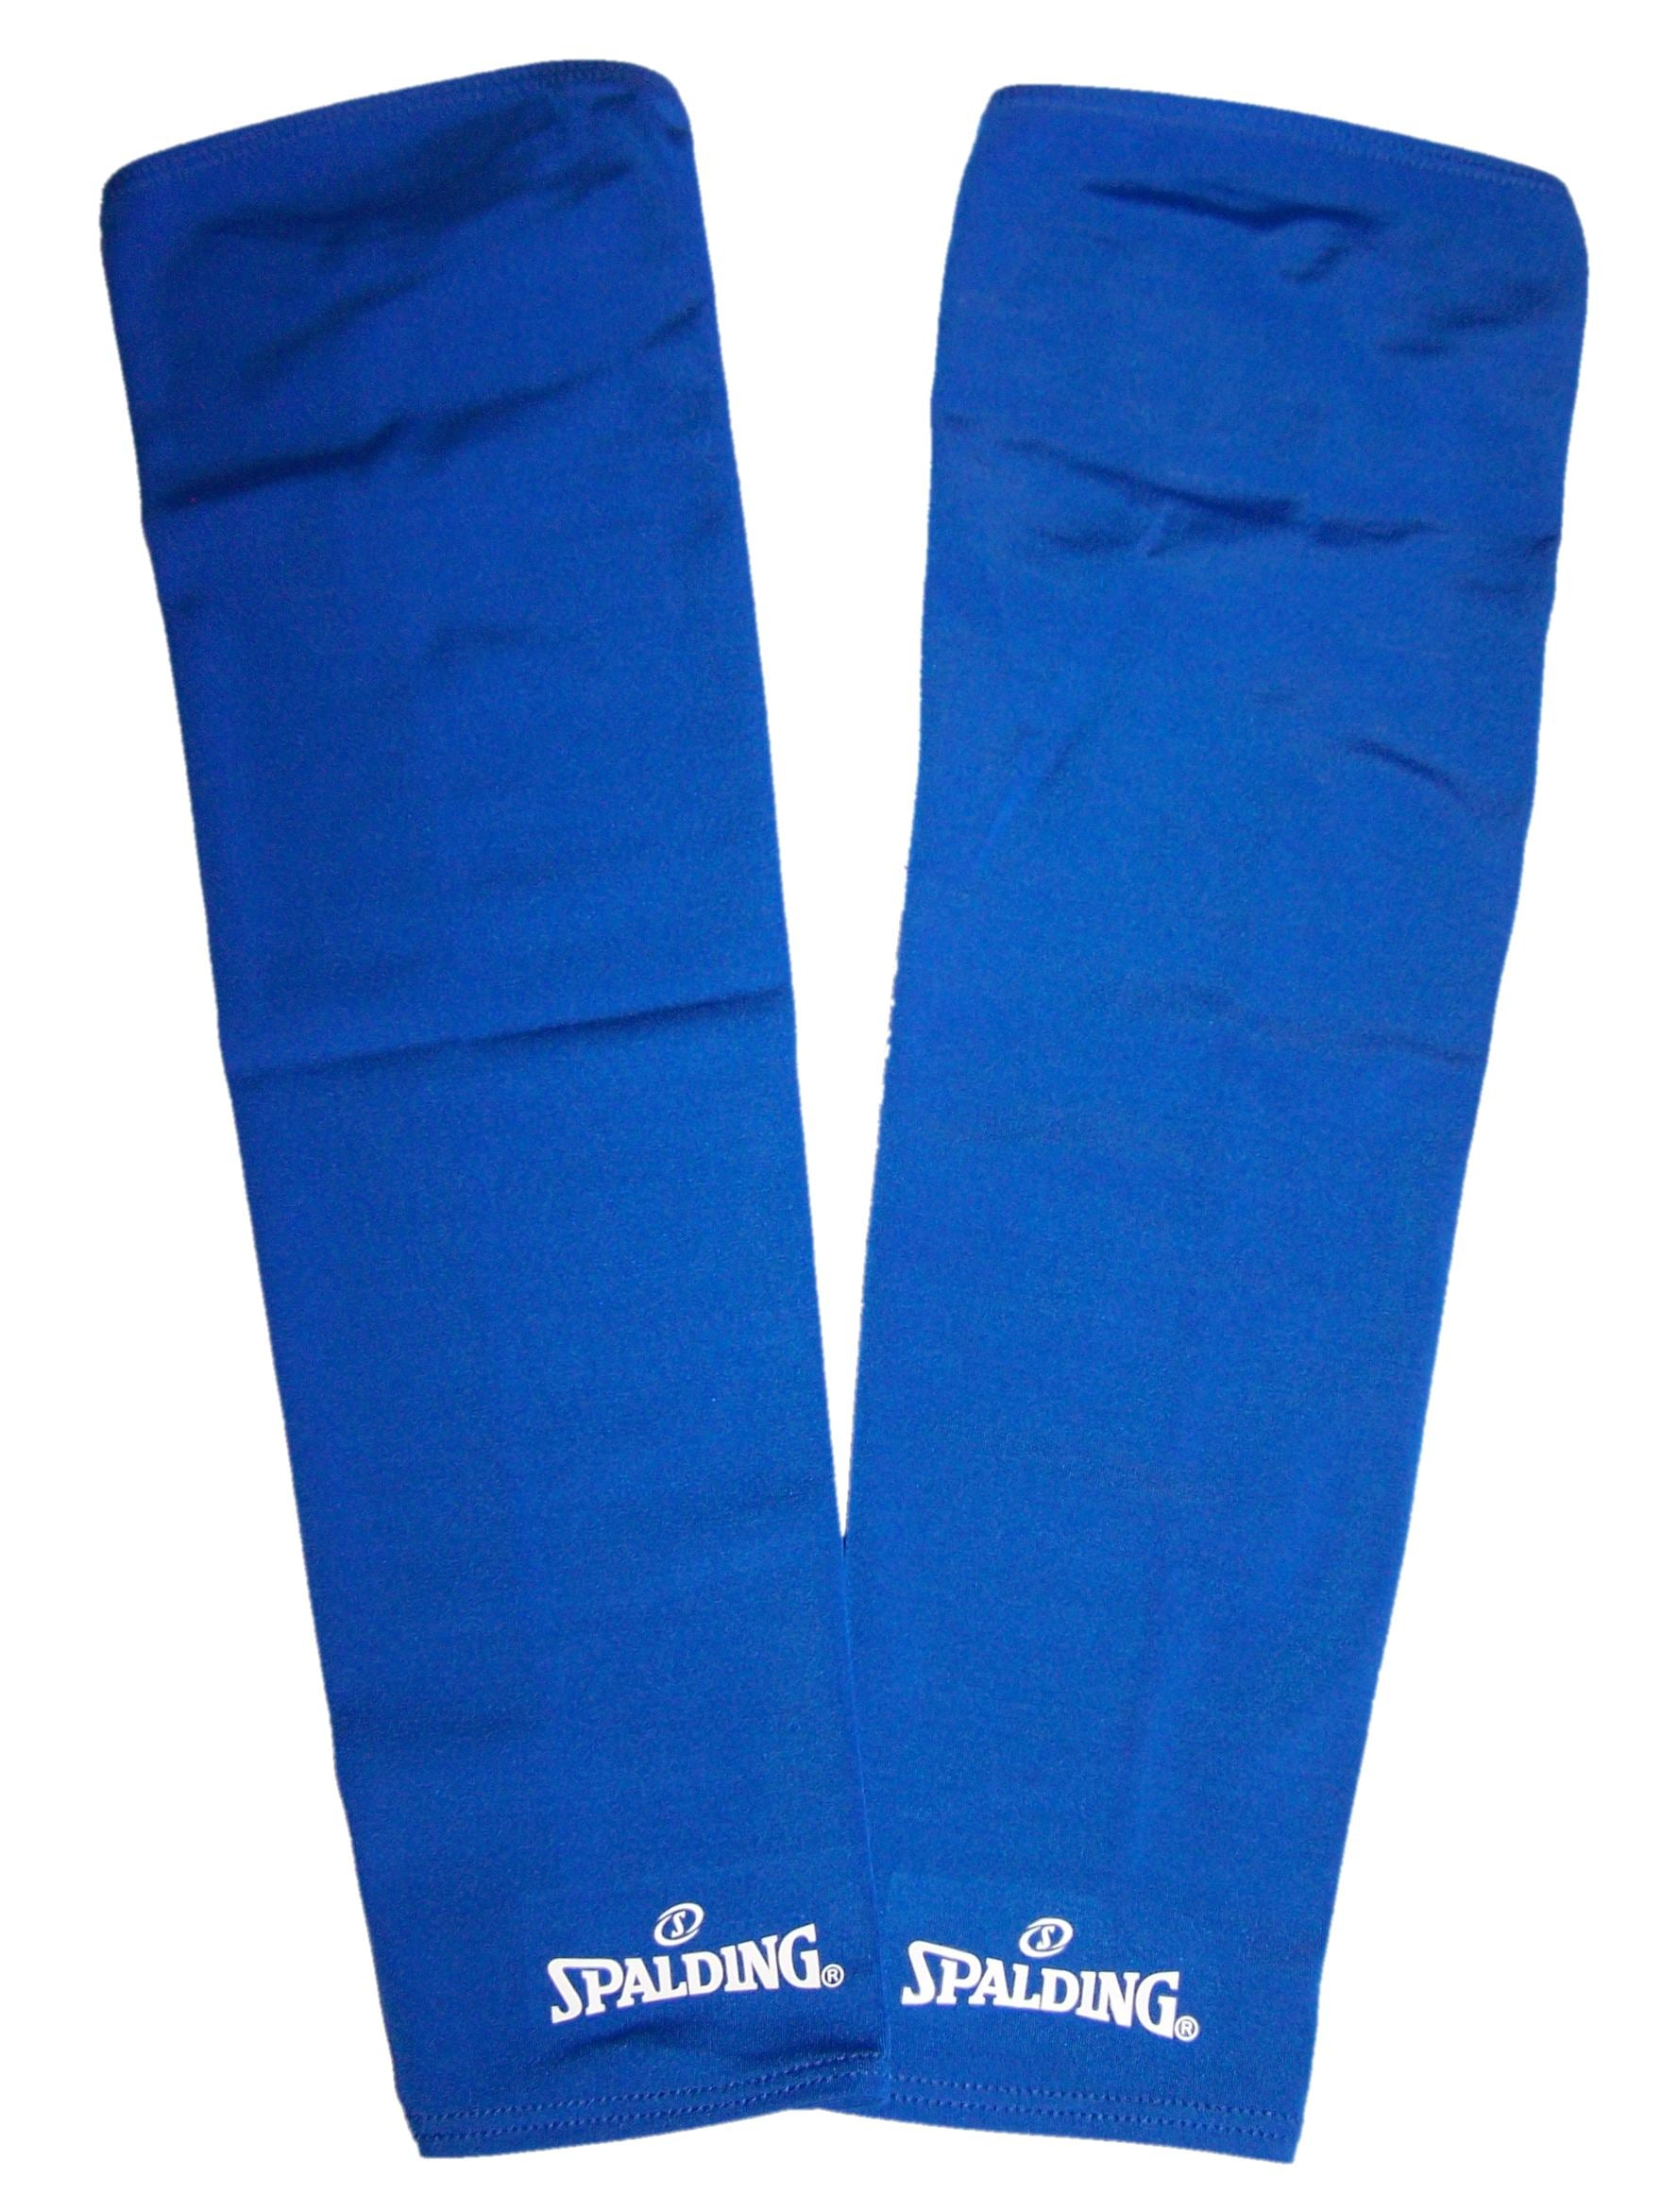 Spalding Shooting Compression Sleeves (Pack of two) - Blue-L SP-3009284-04